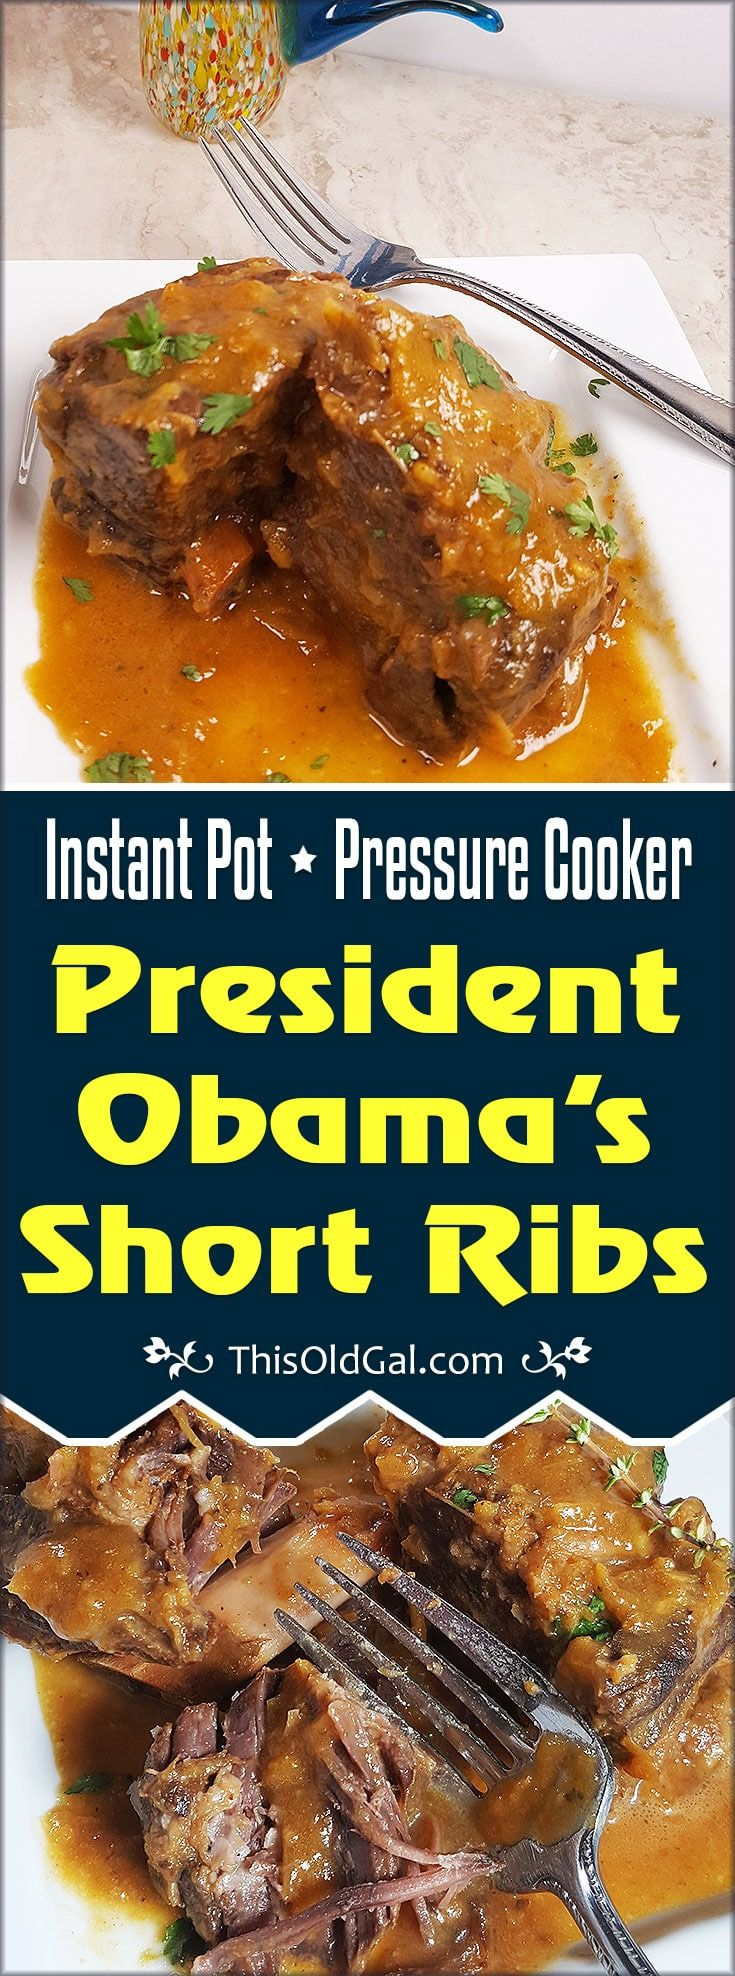 Pressure Cooker President Obama's Short Ribs are braised in Lemongrass, Plum Sauce, Red Wine, Stock and Ginger, then combined with Spring Vegetables. via @thisoldgalcooks